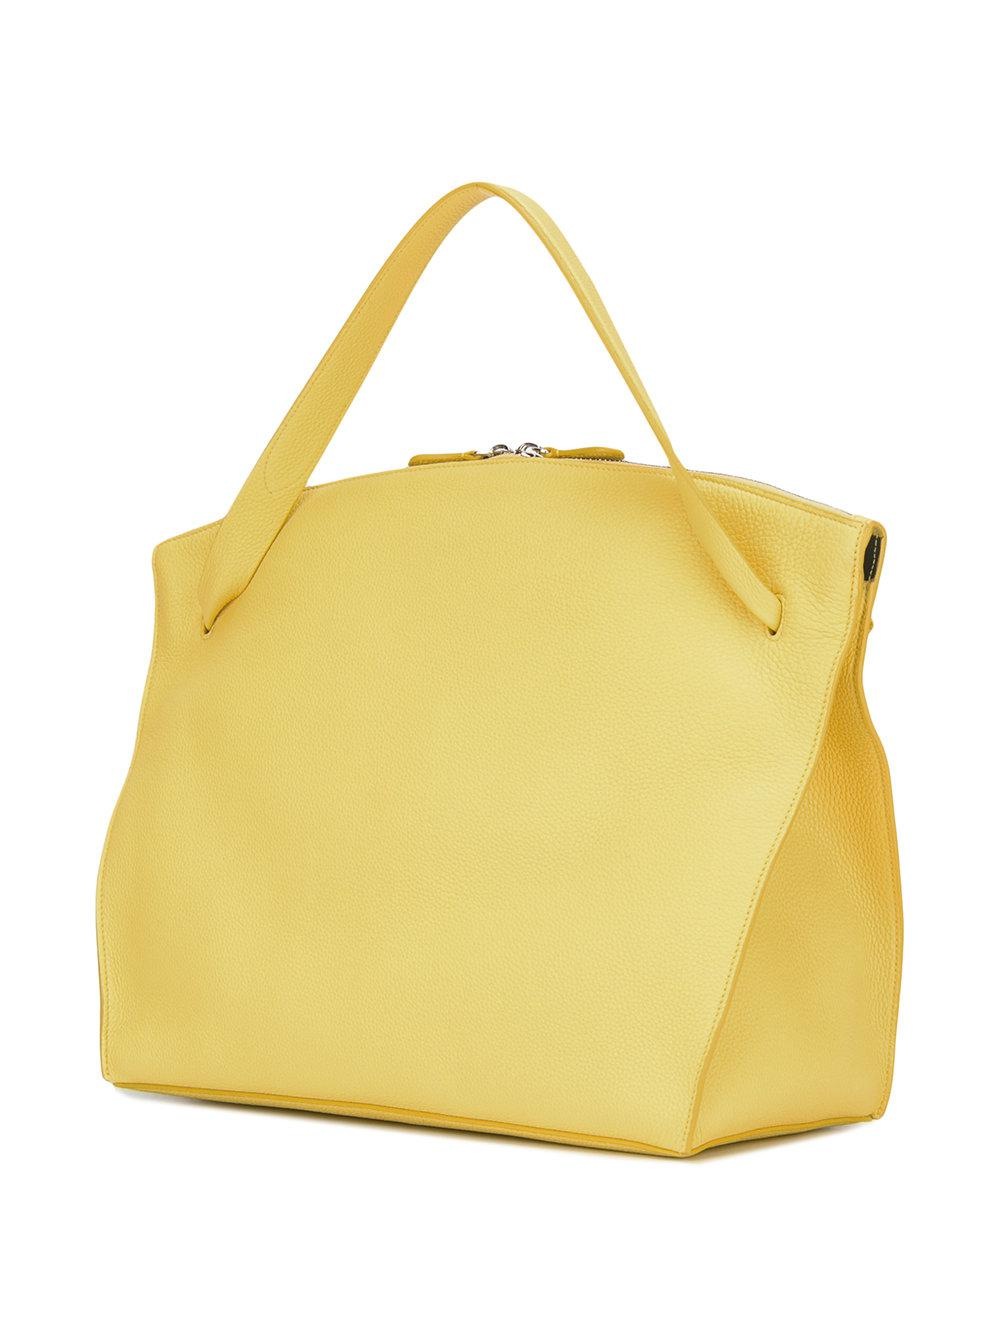 Jil Sander Leather Square Single Handle Tote in Yellow & Orange (Yellow)